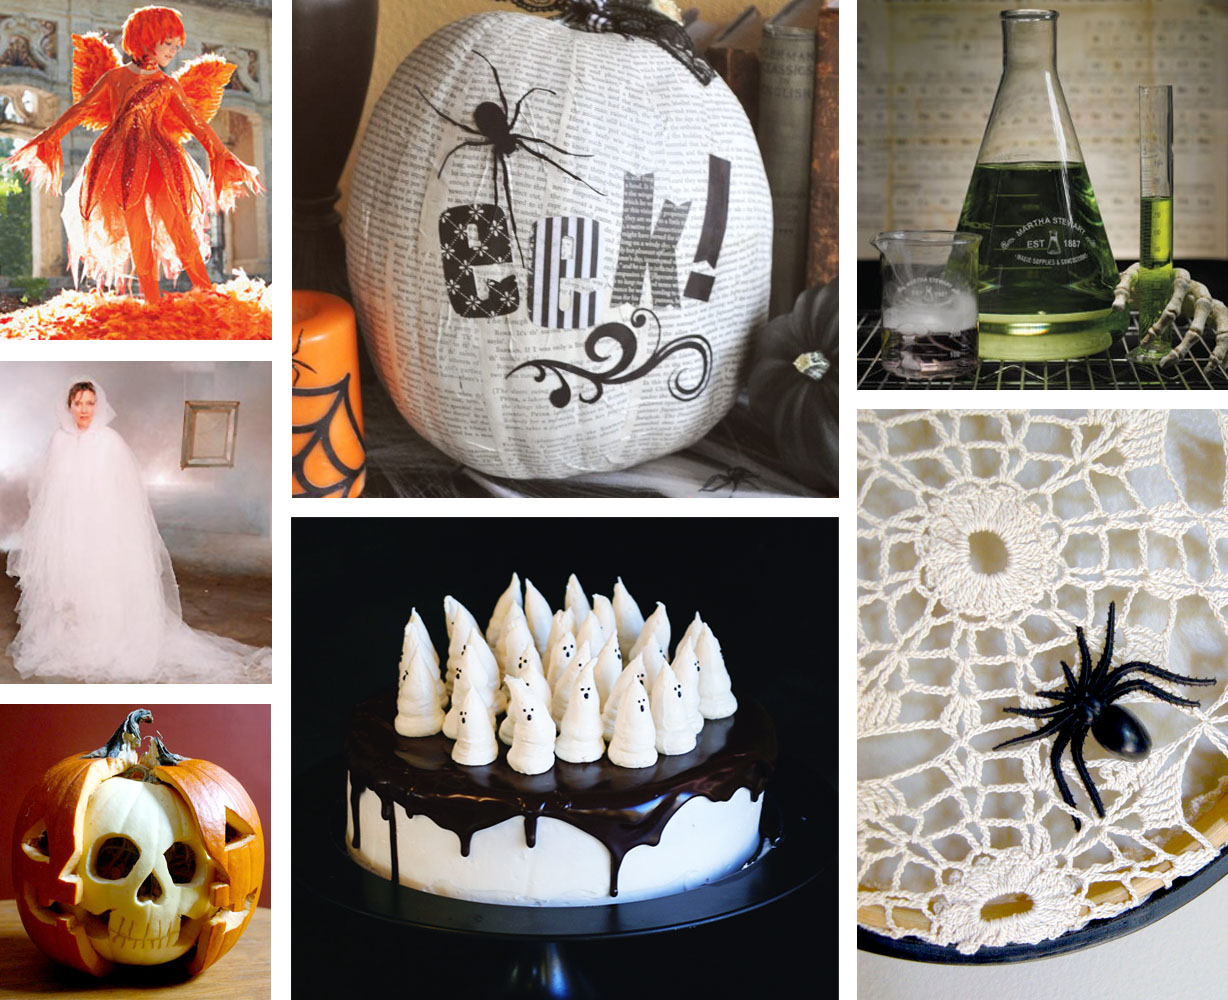 Halloween party decorations pinterest - photo#28